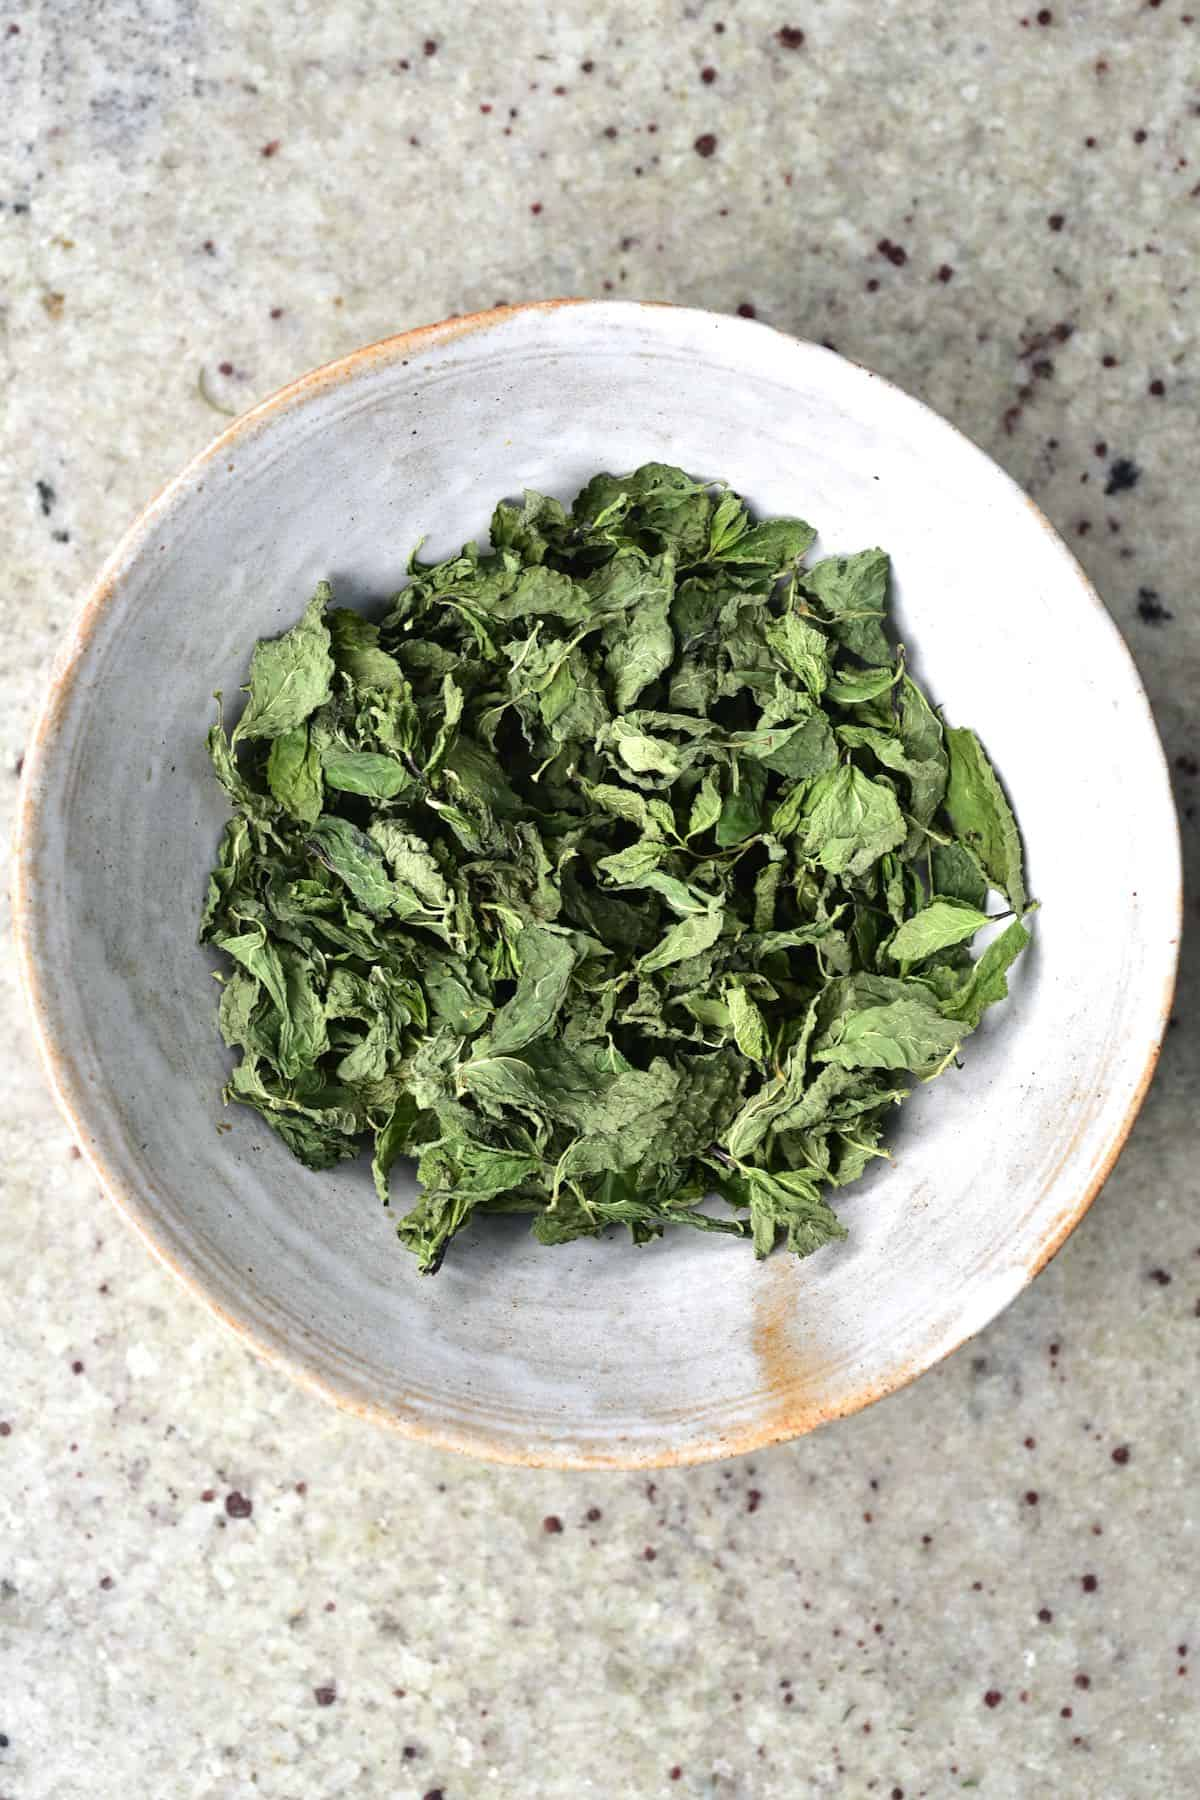 Dried mint leaves in a bowl